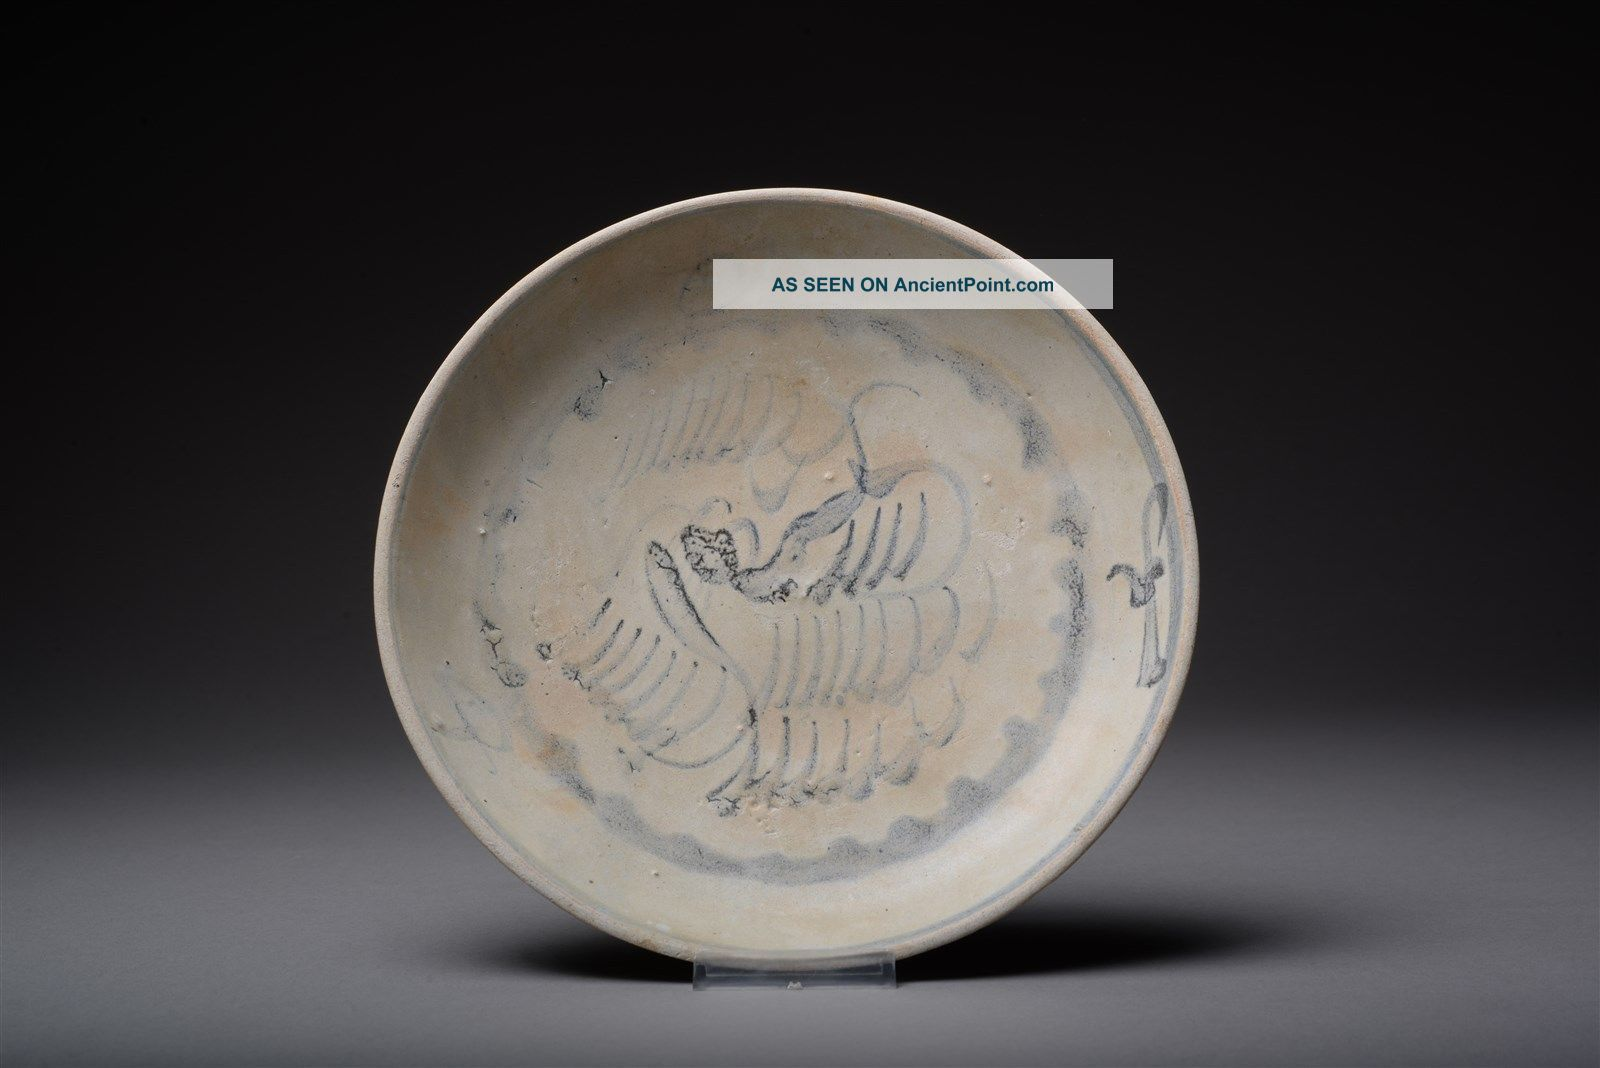 Antique Qing Dynasty Daoguang Tek Sing Shipwreck Abstract Phoenix Plate - 1822ad Other Maritime Antiques photo